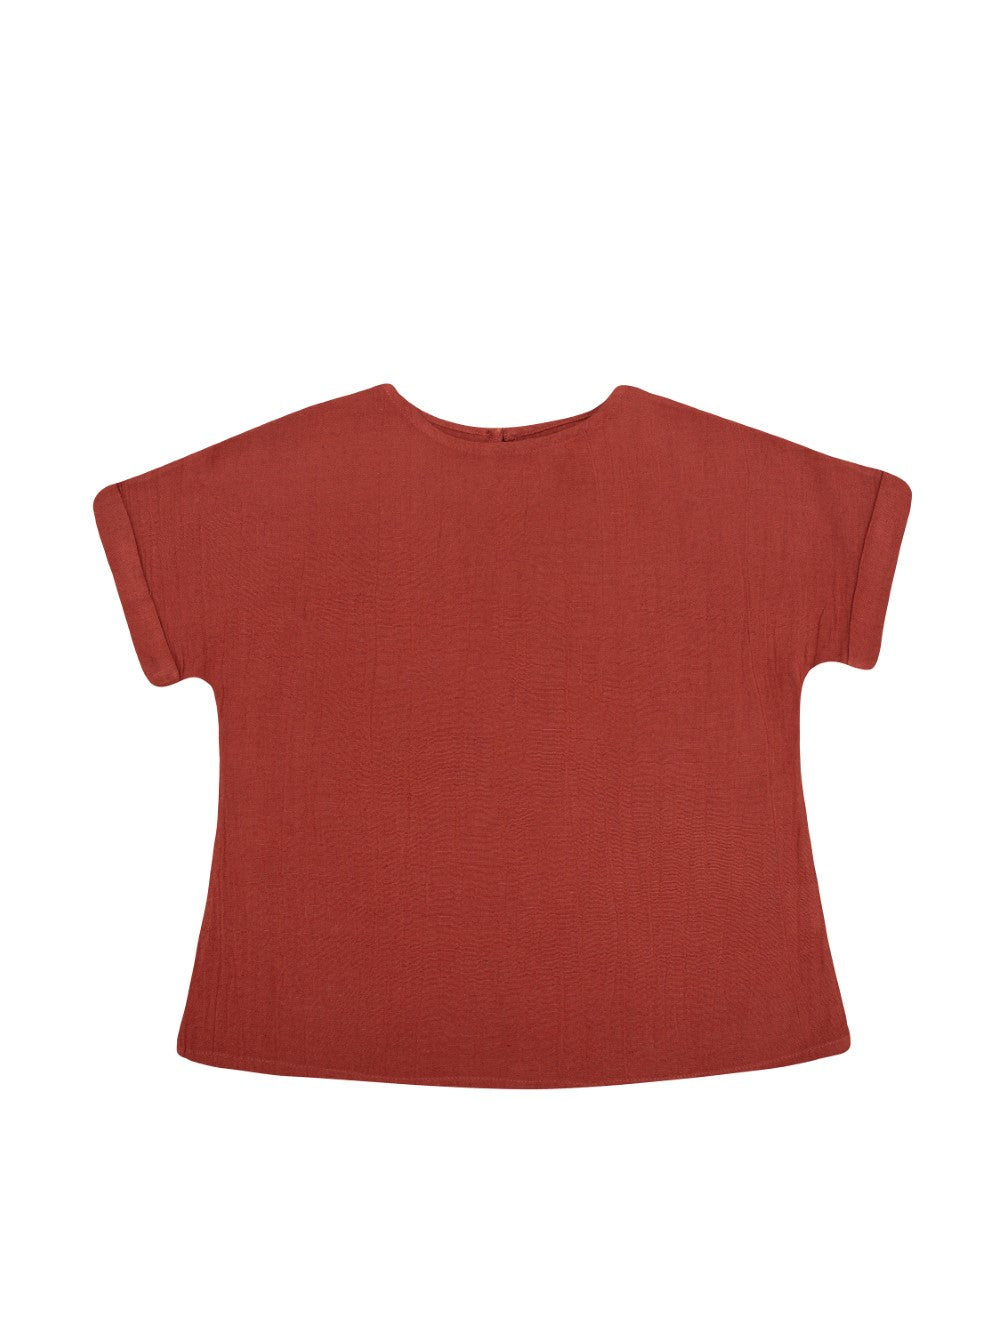 Rust Light Weight Top